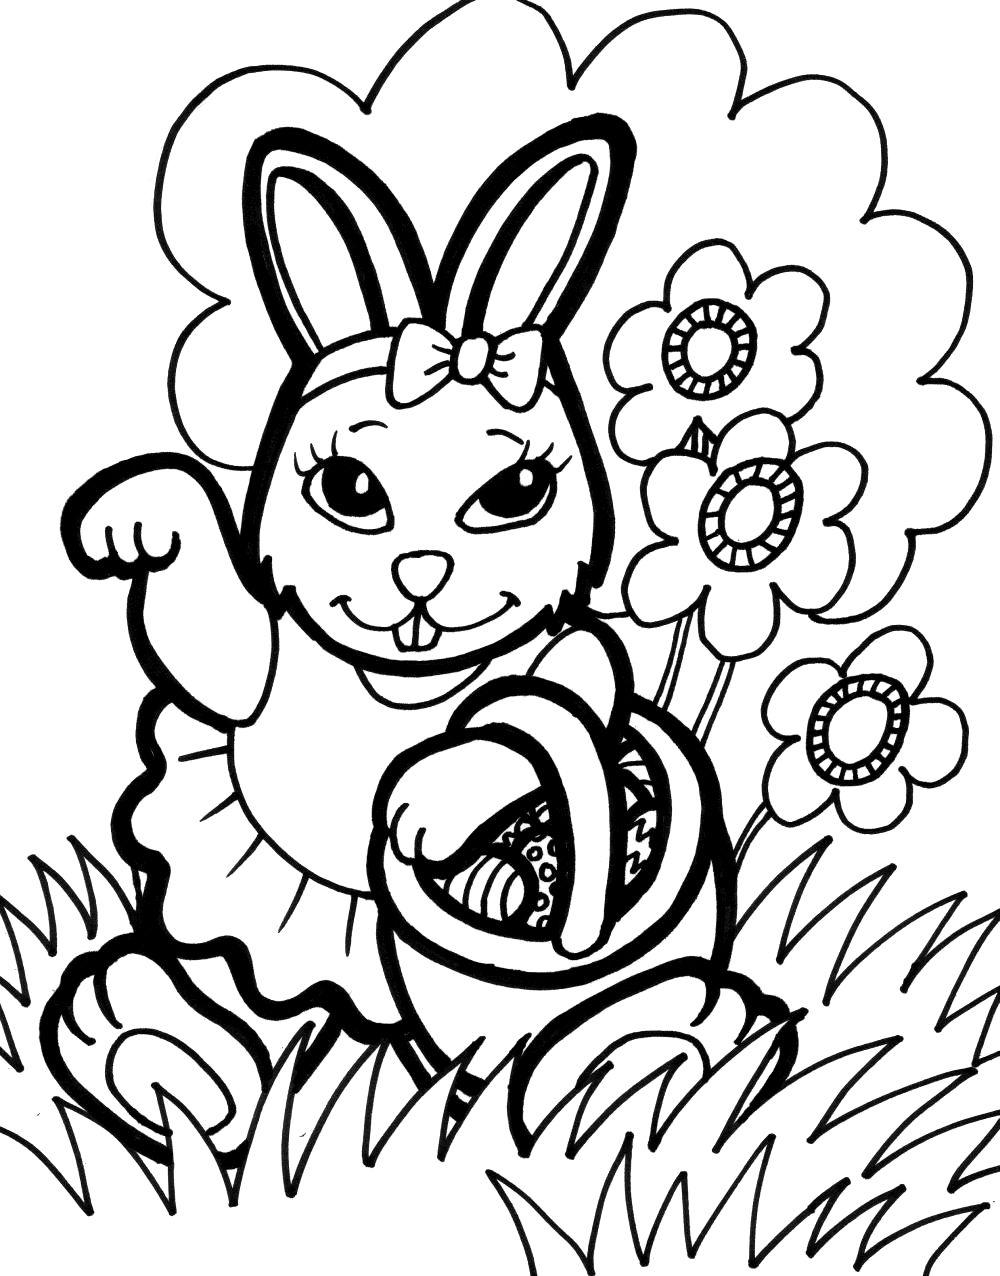 Coloring pages bunny - Free Bunny Coloring Pages Printable